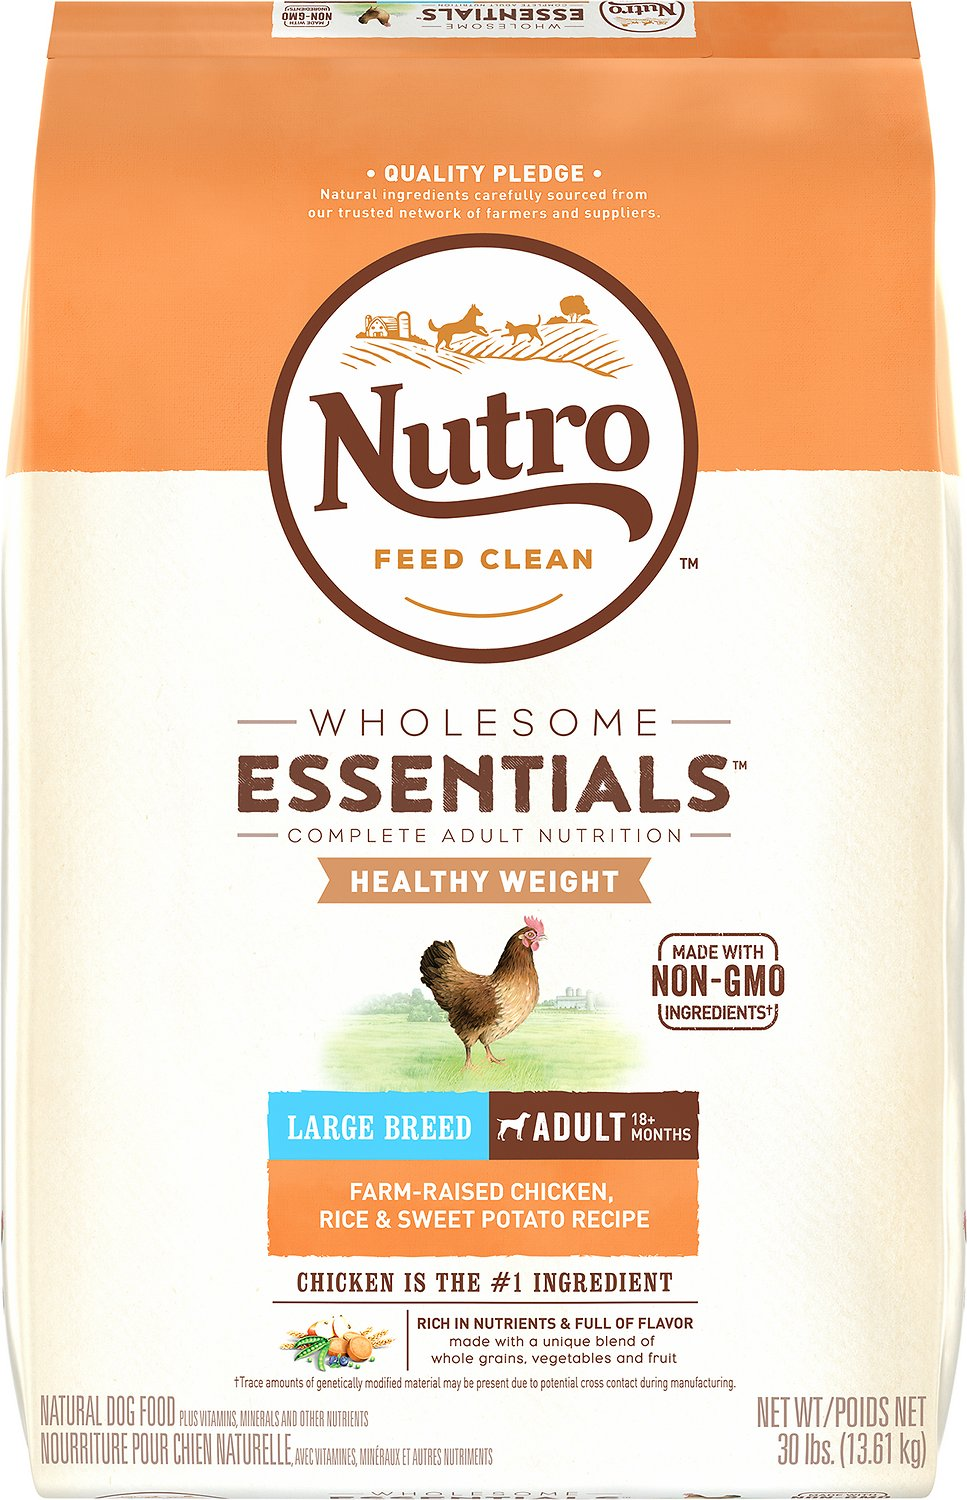 Nutro Wholesome Essentials Healthy Weight Large Breed Adult Farm Raised Chicken, Rice & Sweet Potato Recipe Dry Dog Food, 30-lb bag